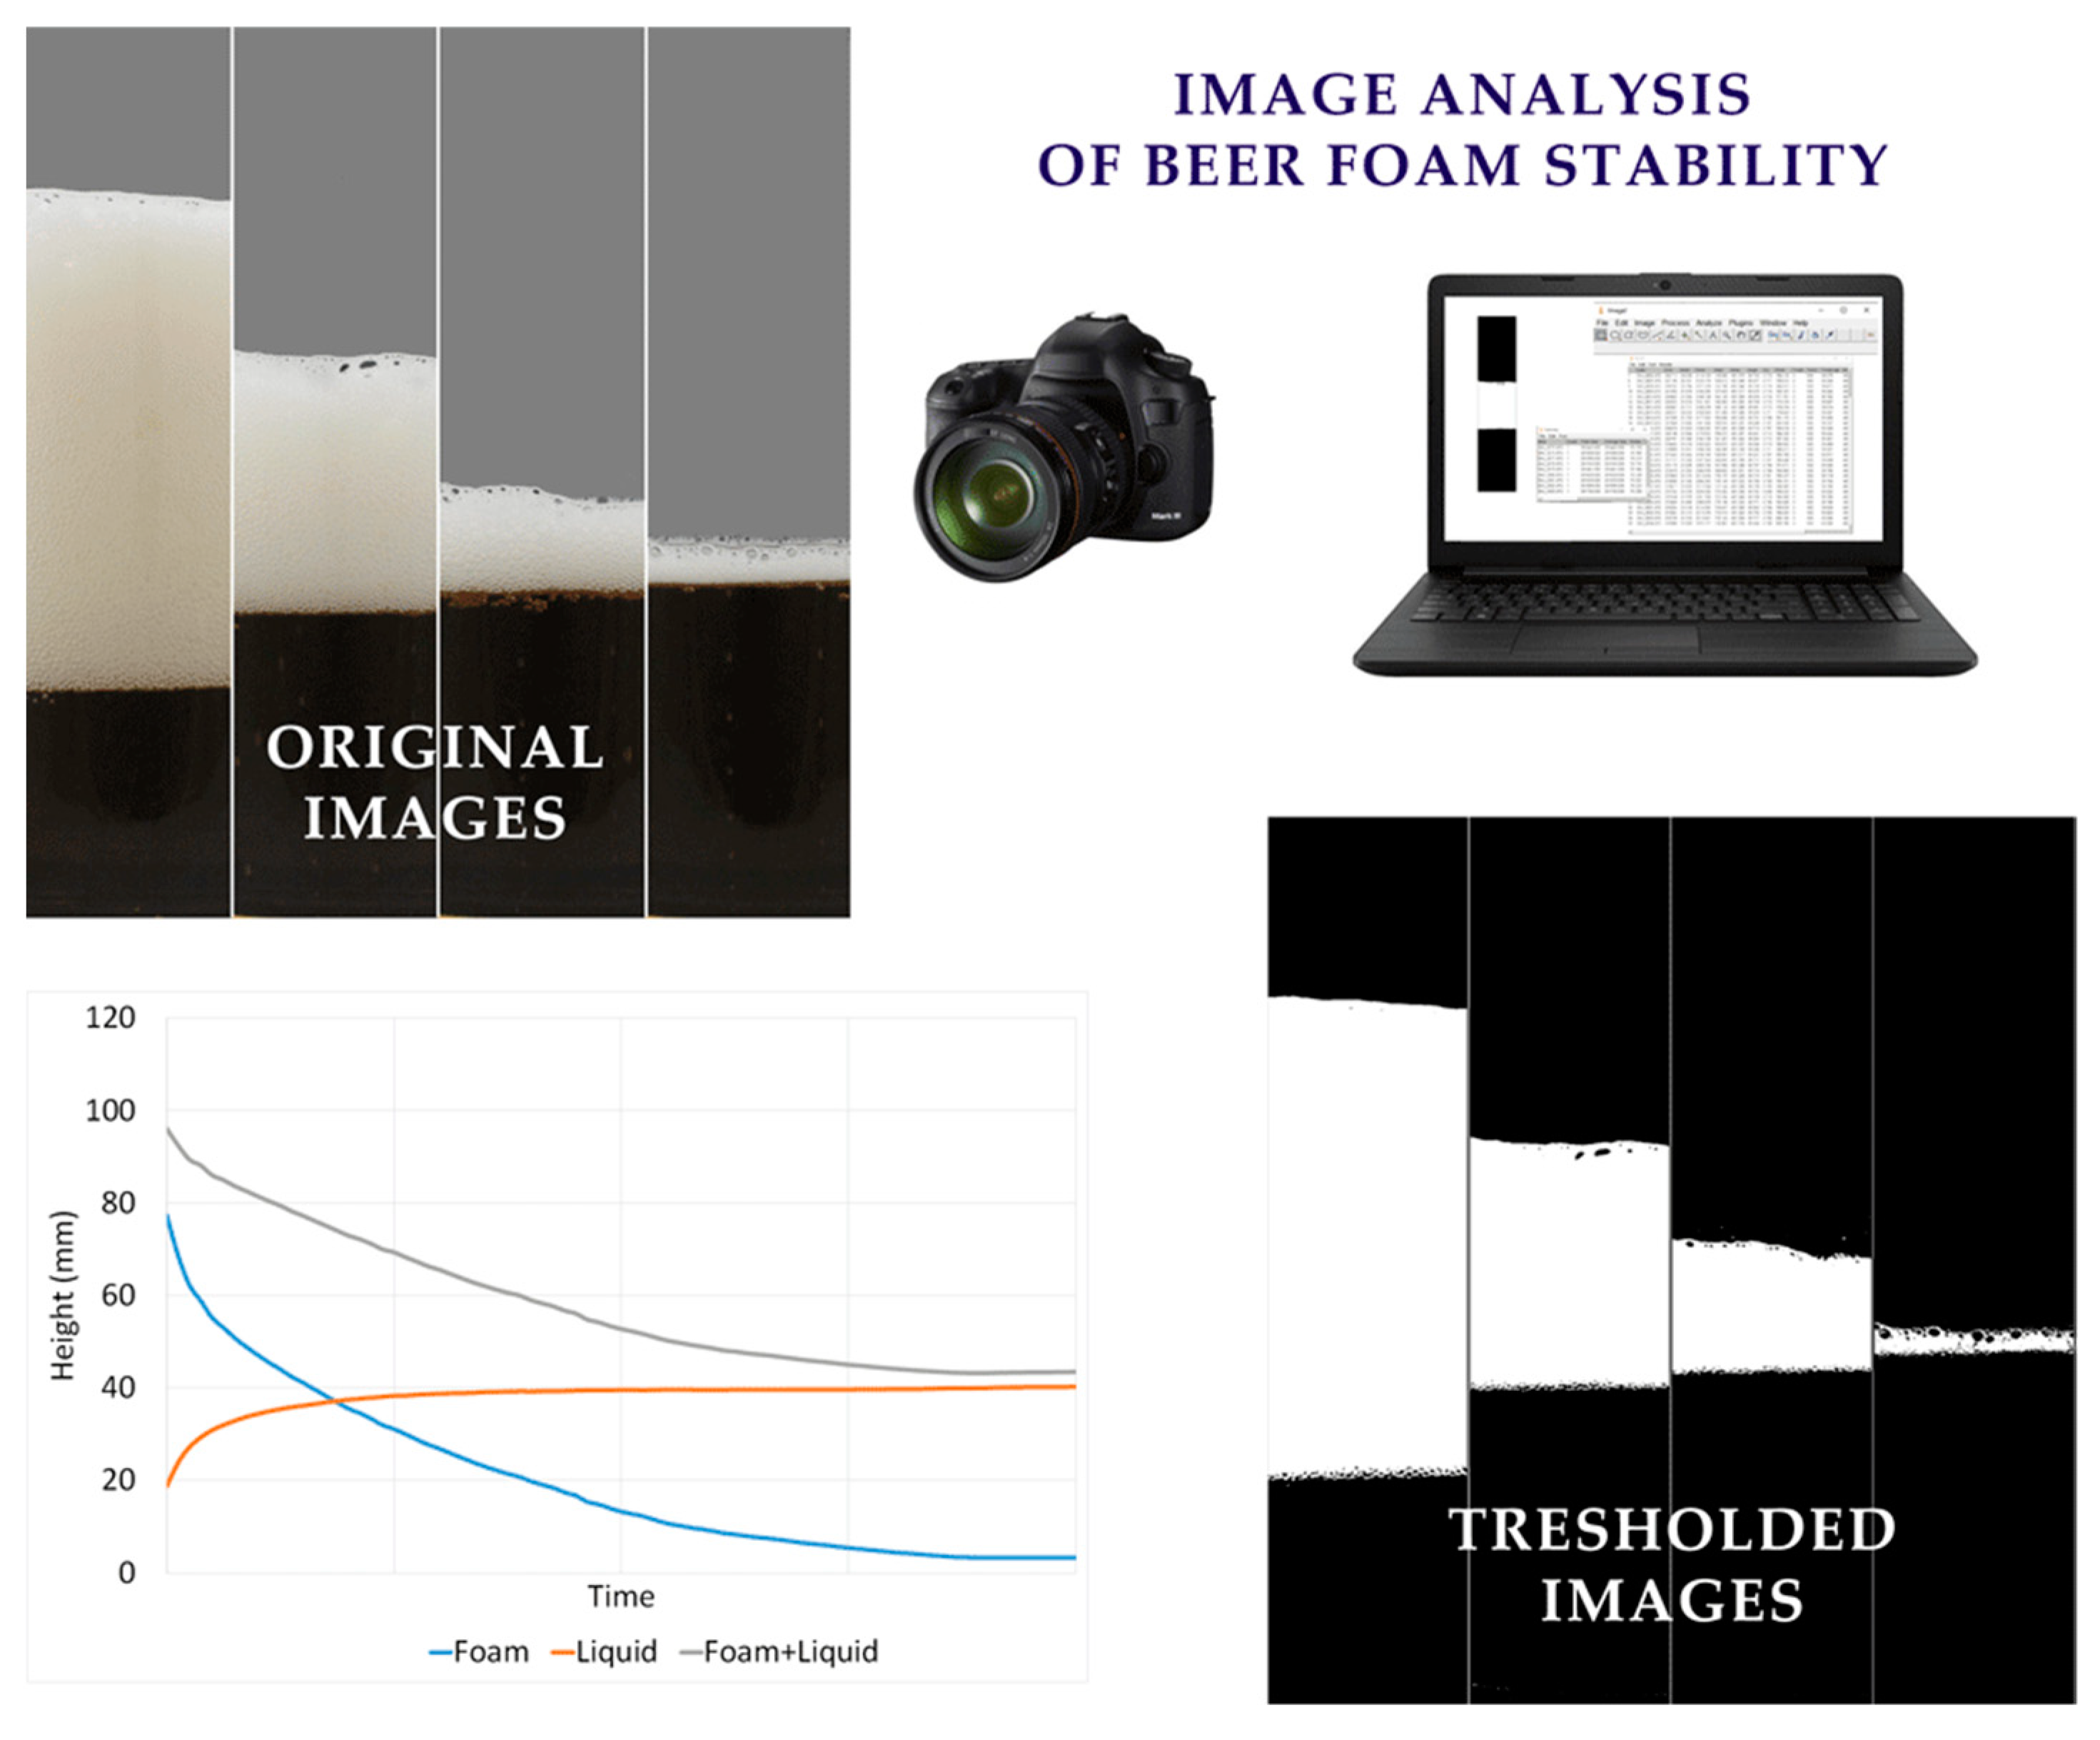 Beverages | Free Full-Text | Computer Vision Method in Beer Quality